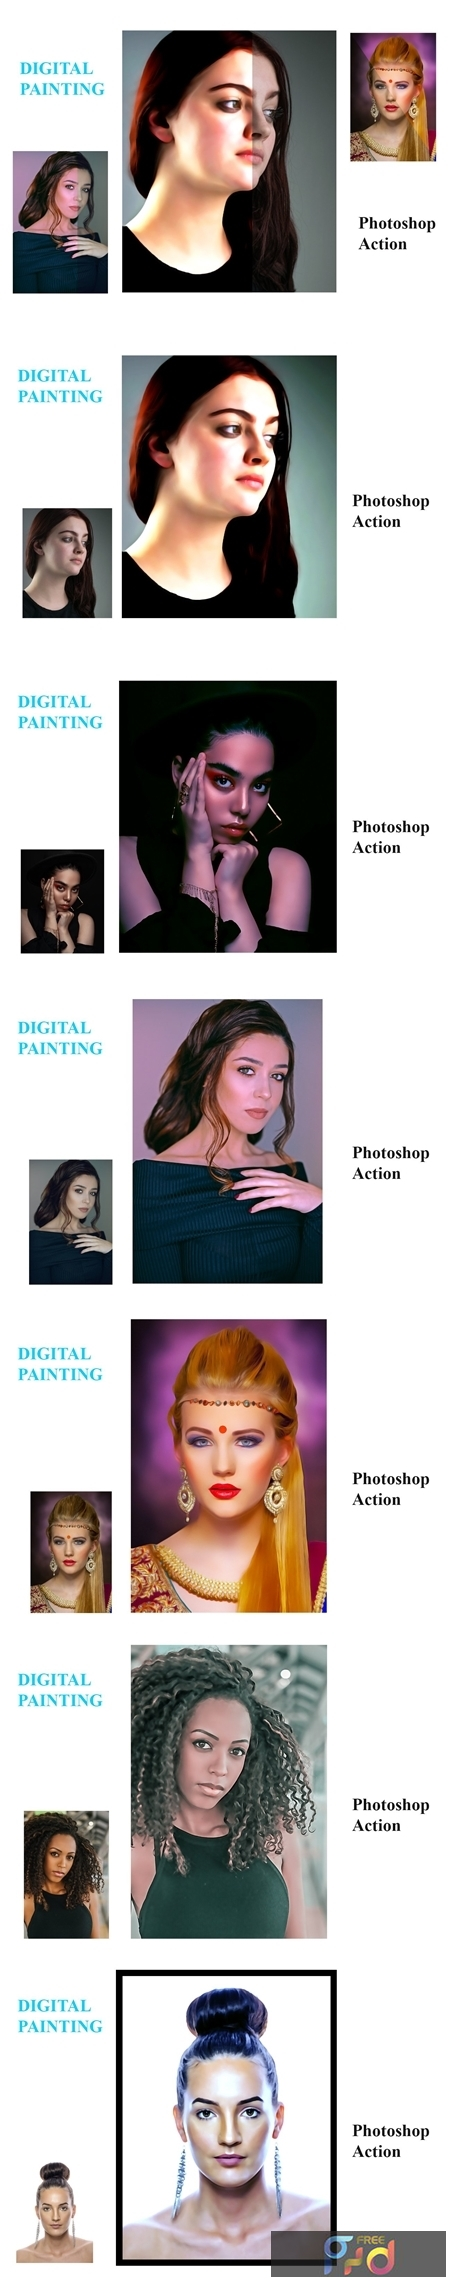 Digital Painting Photoshop Action 4557382 1